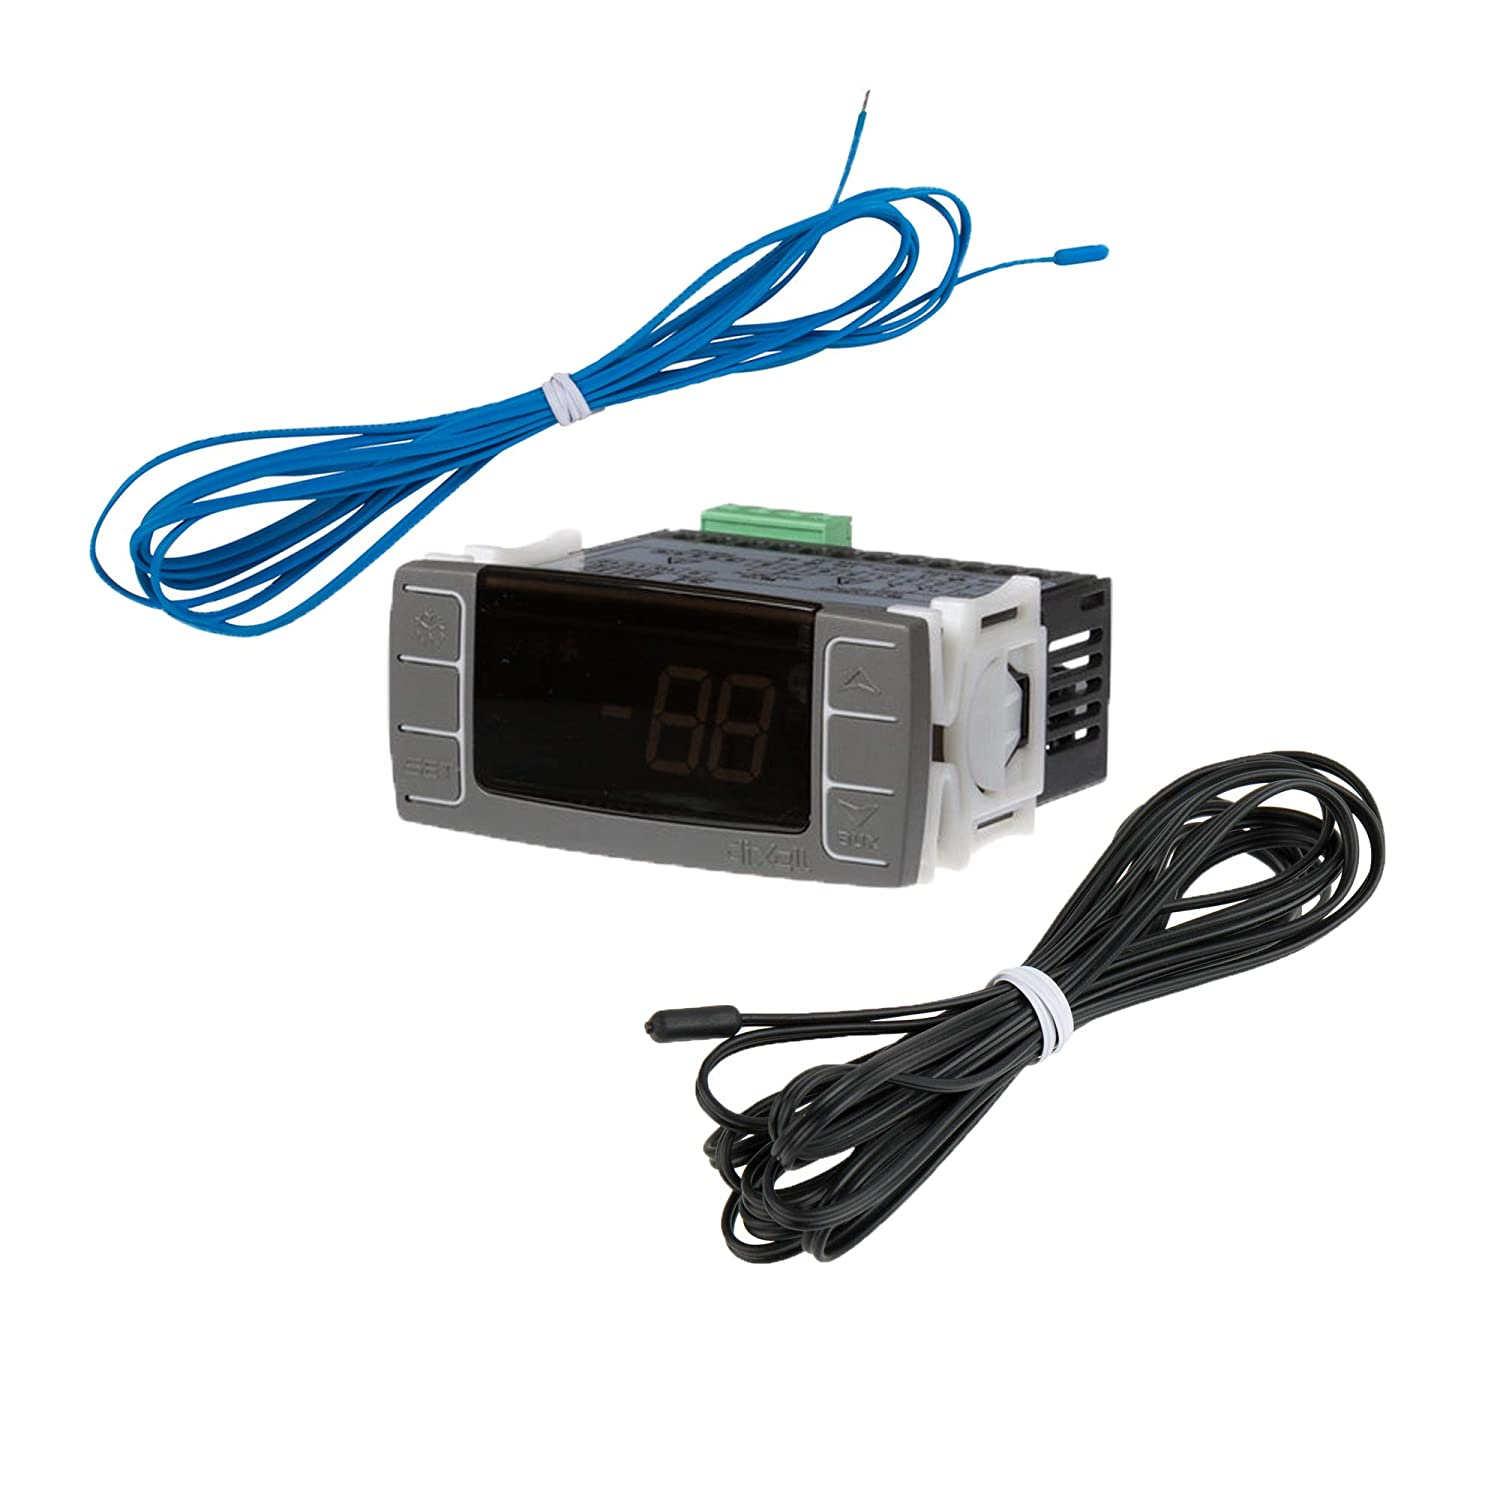 New Dixell Model: XR02CX Digital Temperature Control Panel Thermostat with 2 Temperature Sensor Probes Included / 120v